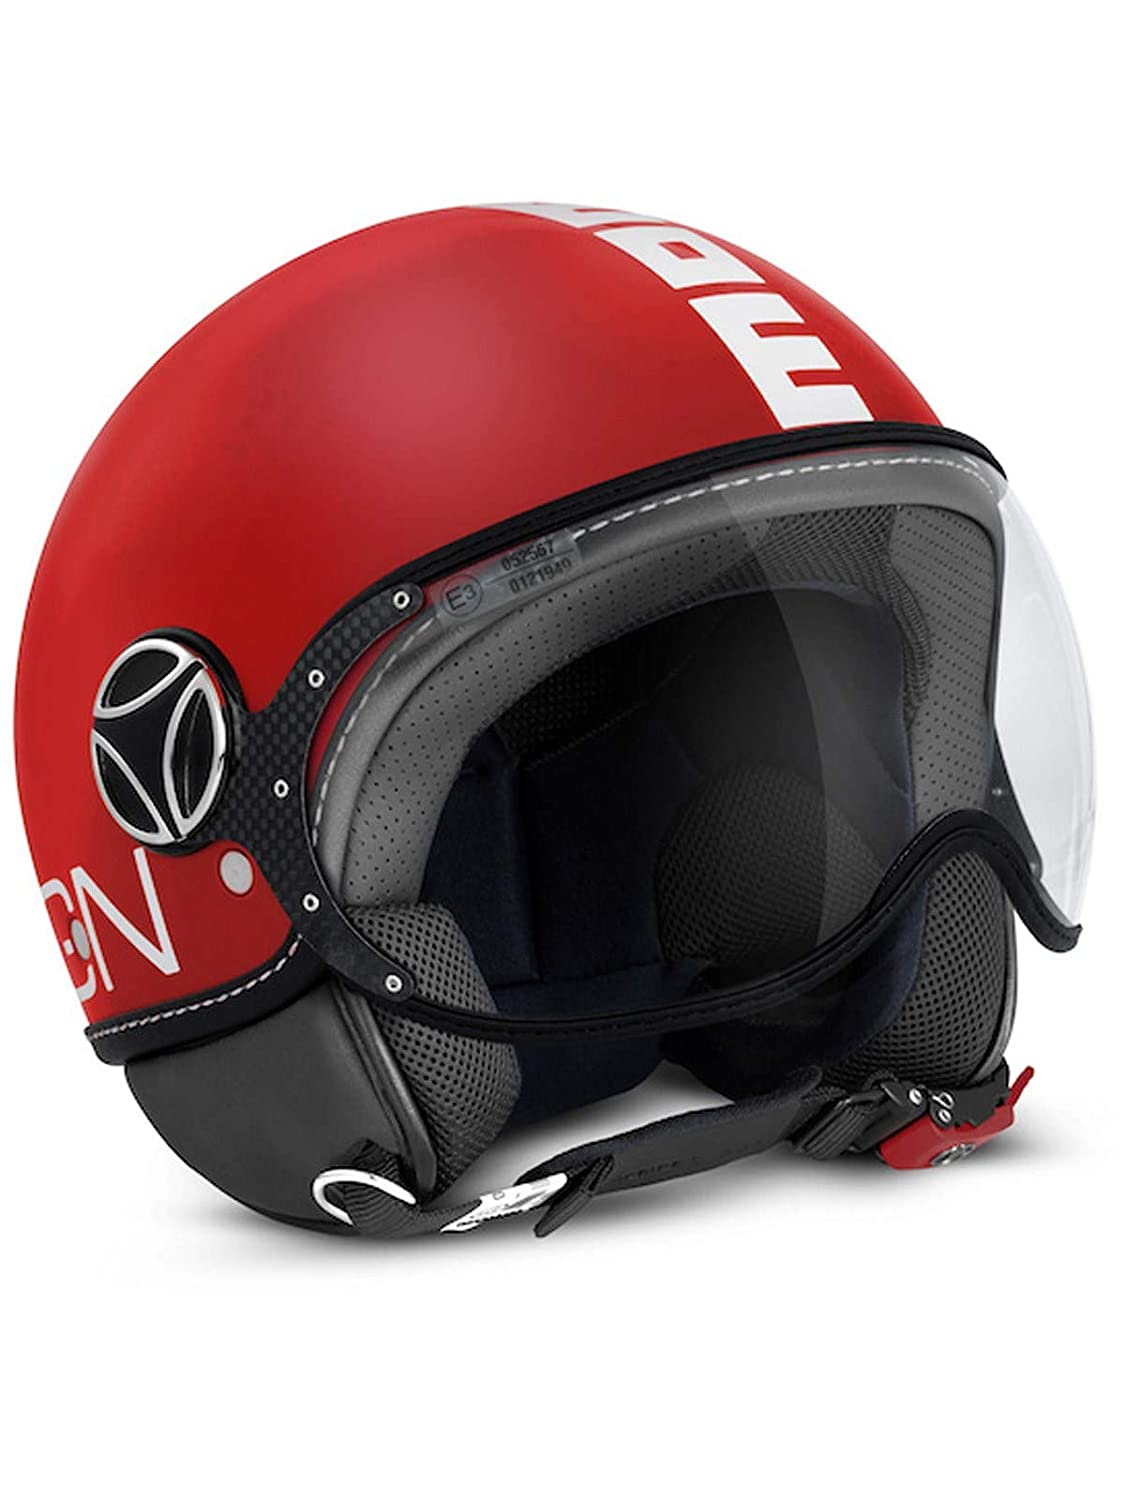 Momo FGTR Classic Open Face Motorcycle Helmet in Red Matt with Logo White